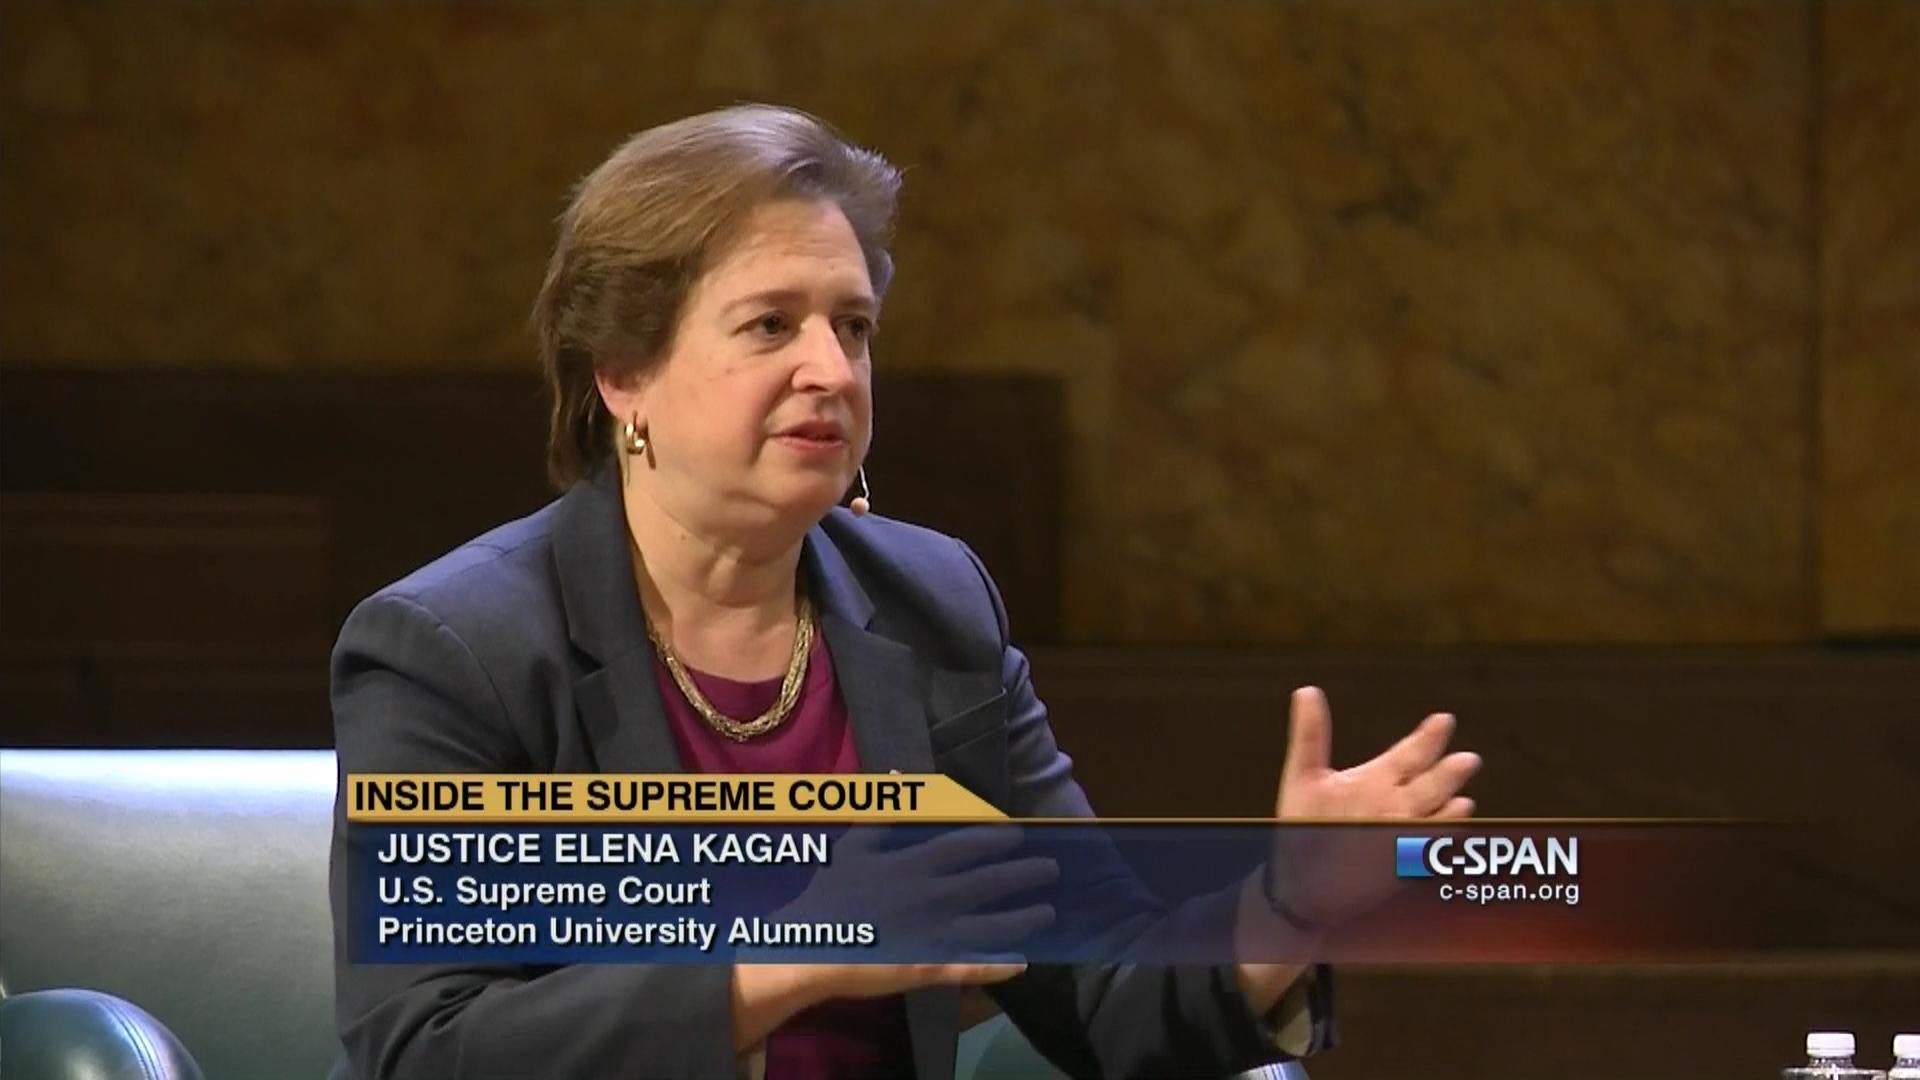 elena kagan oxford thesis Speaking at harvard law school last week, where she used to be dean, supreme court justice elena kagan gleefully told an overflow crowd of students abo sign in sign up elena kagan, who wrote her oxford thesis on the jurisprudence of the warren court.